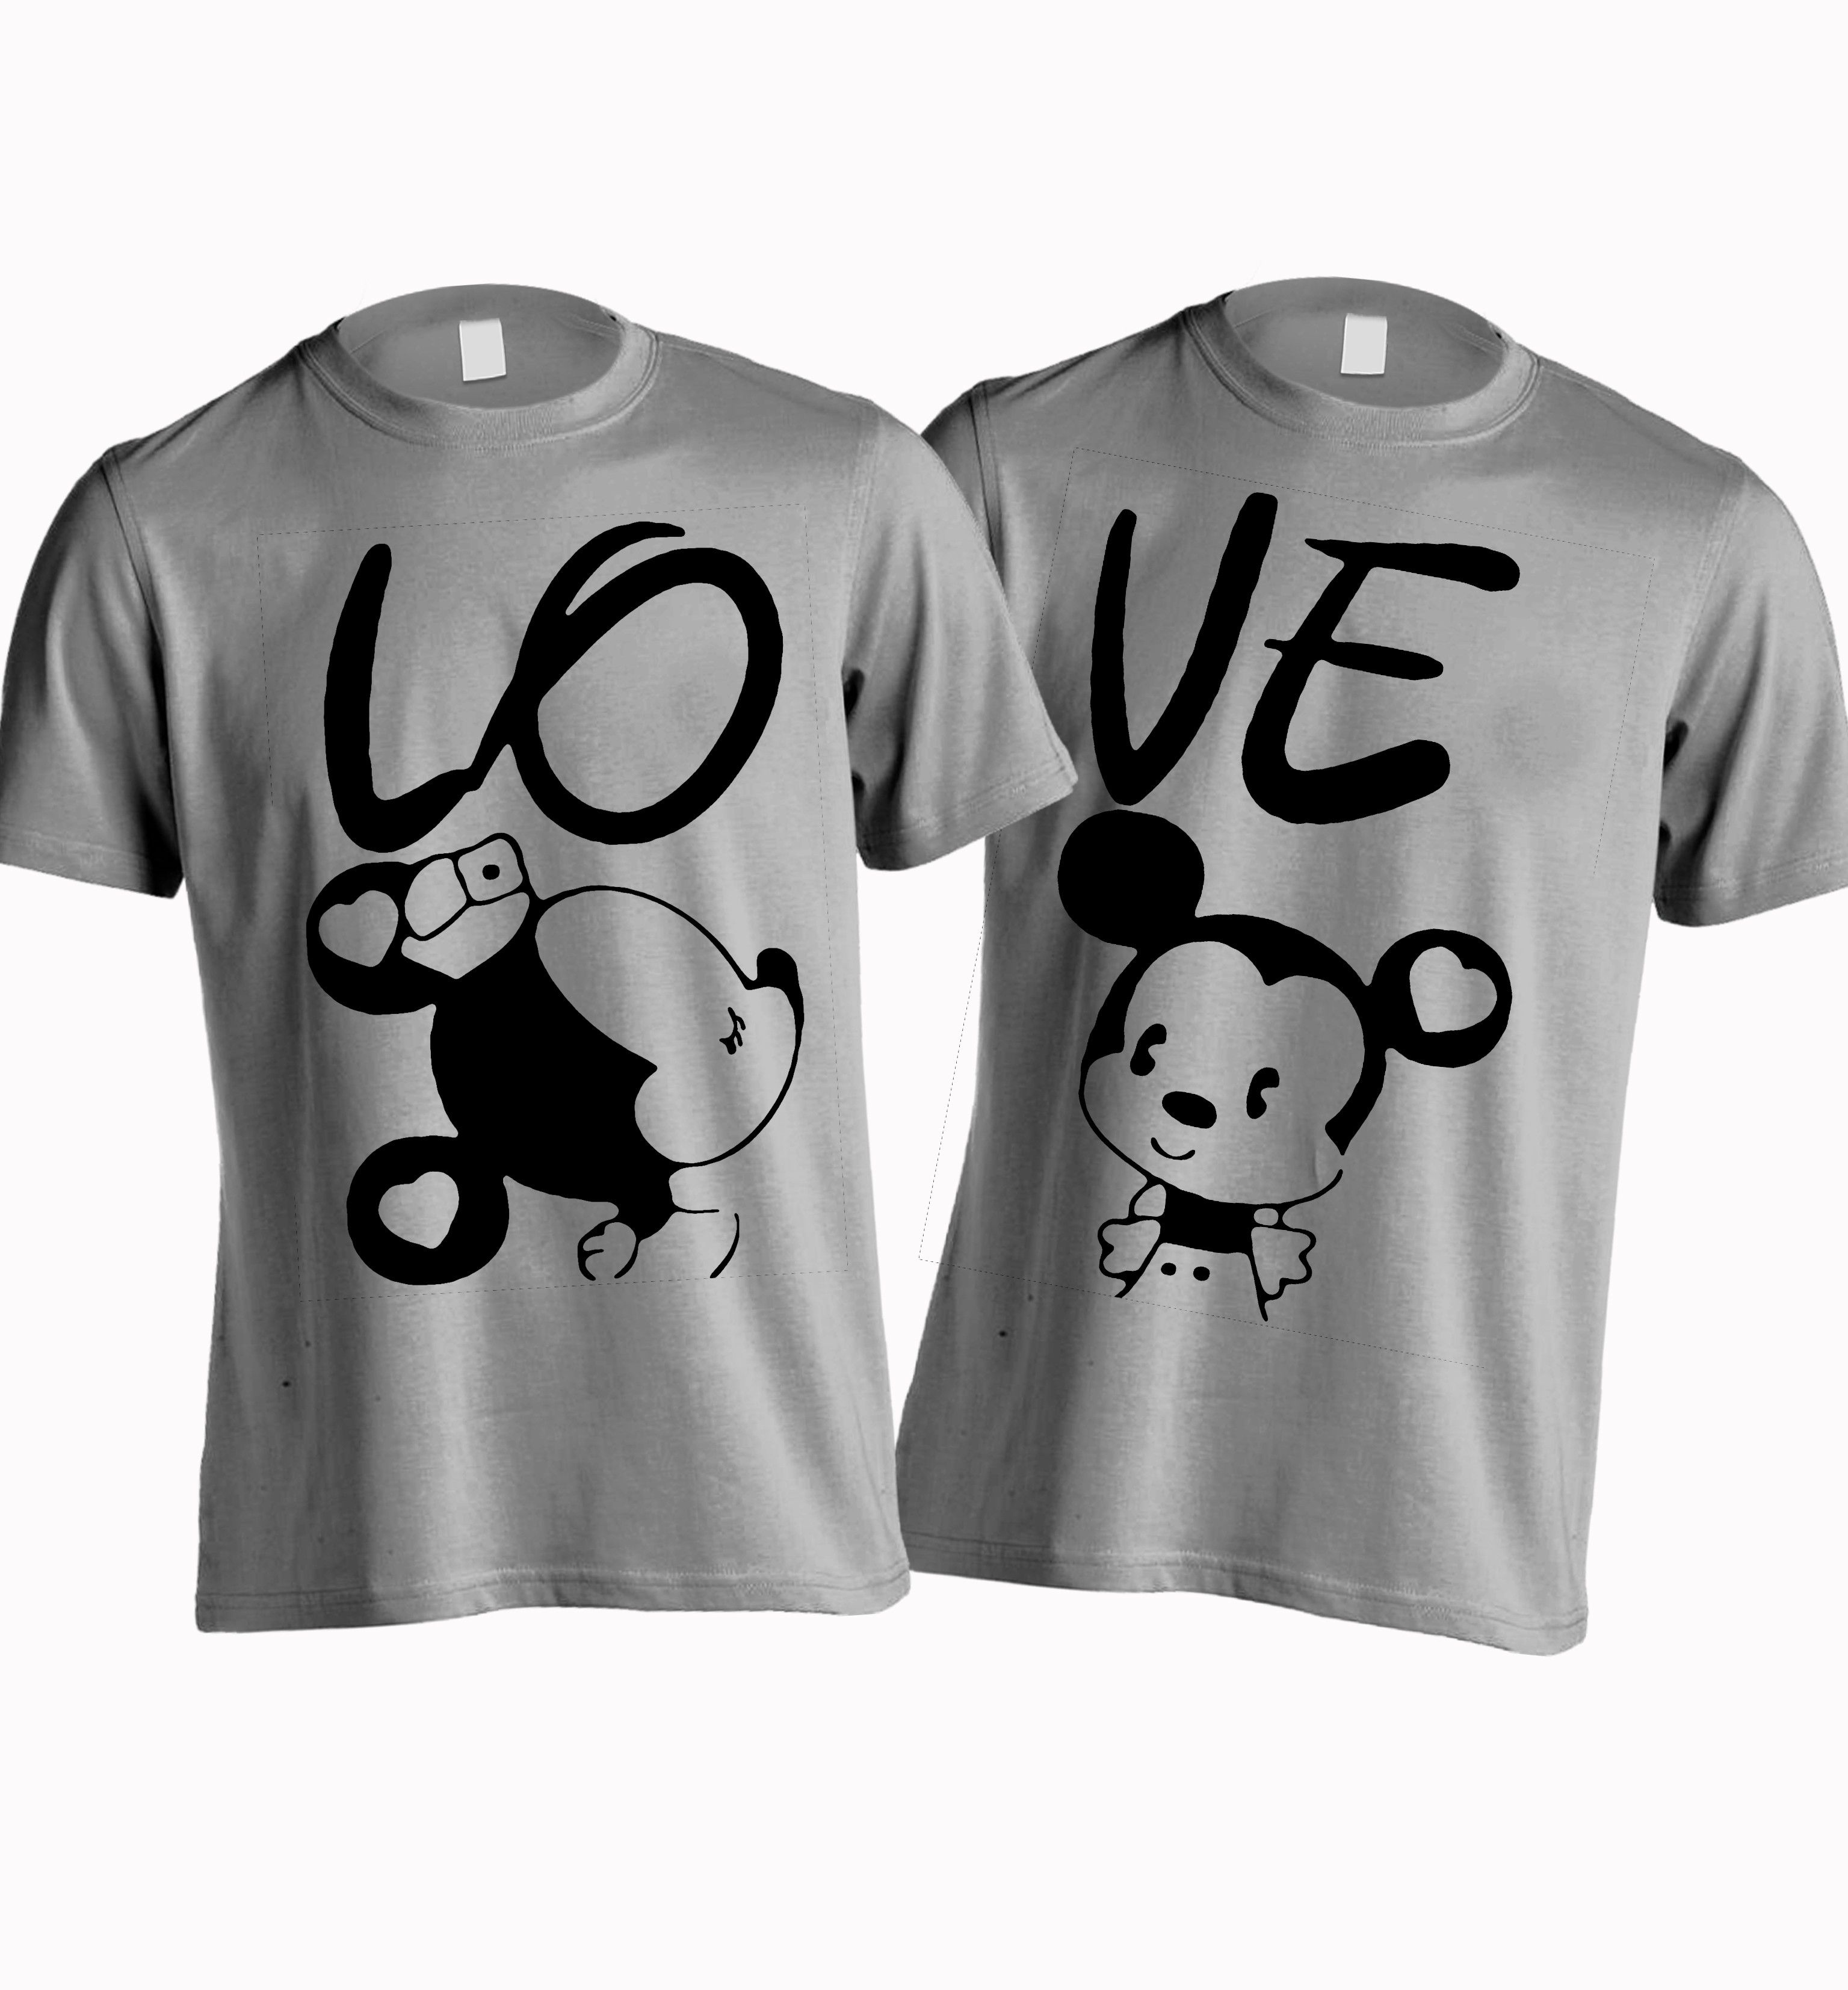 Black t shirt pack - Young Trendz Printed Men S Round Neck T Shirt Pack Of 2 Price